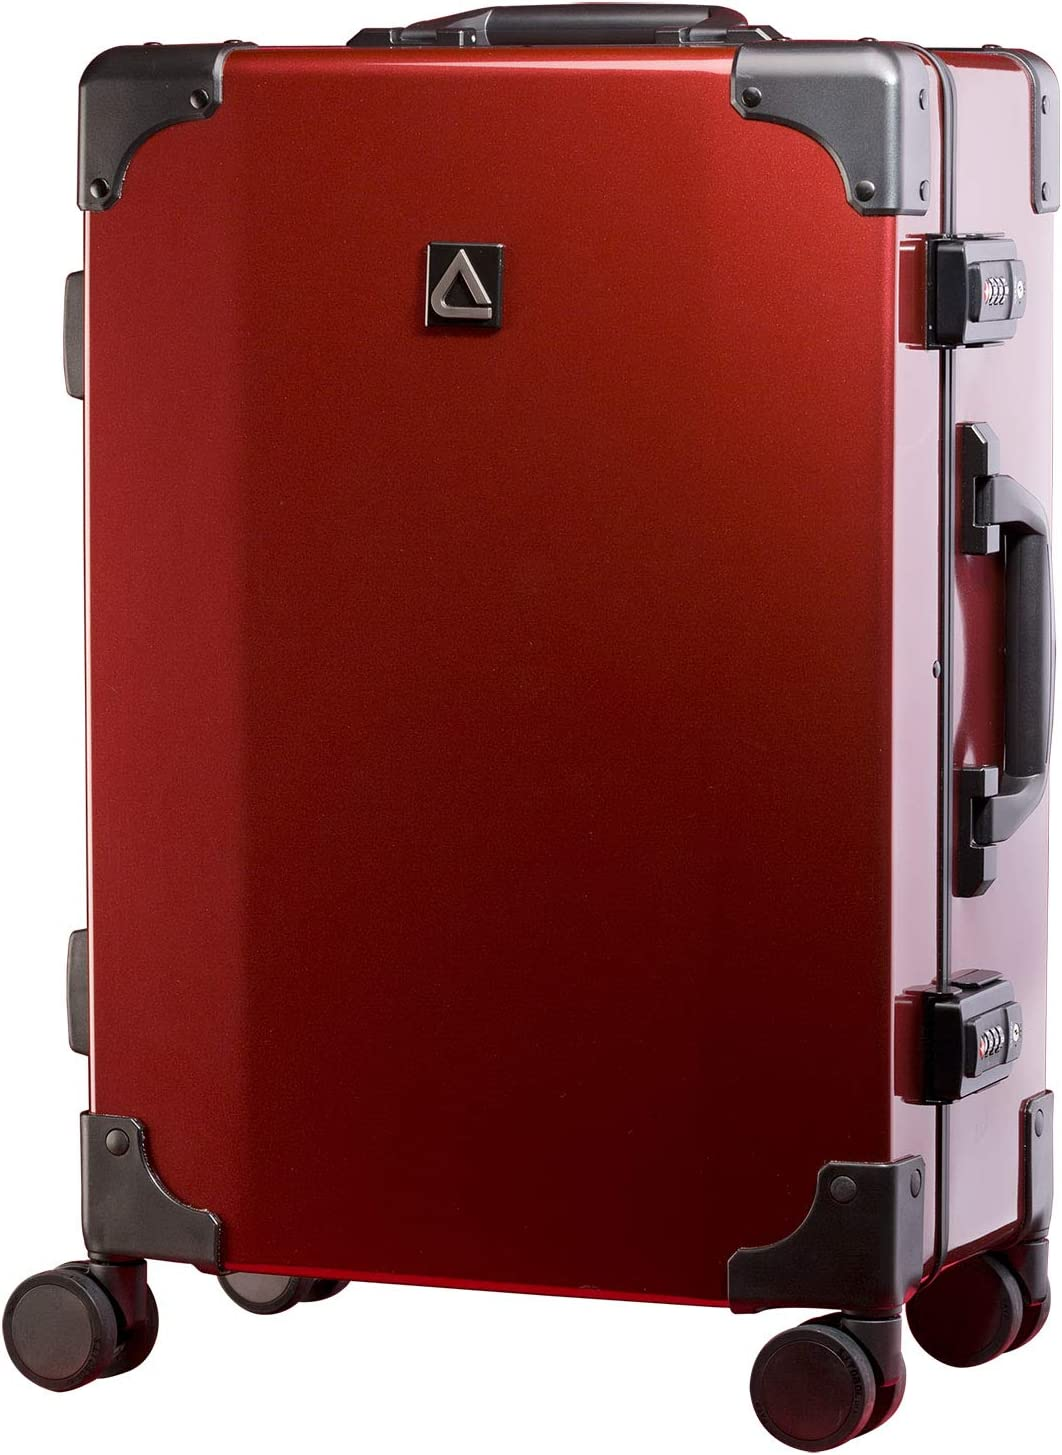 ABS+PC Luggage With 8-Rolling Spinner Wheels Andiamo Classico Suitcase with Built-in TSA Lock Red Ruby Zipperless 20 Inch Hardside Carry On Bag- Lightweight